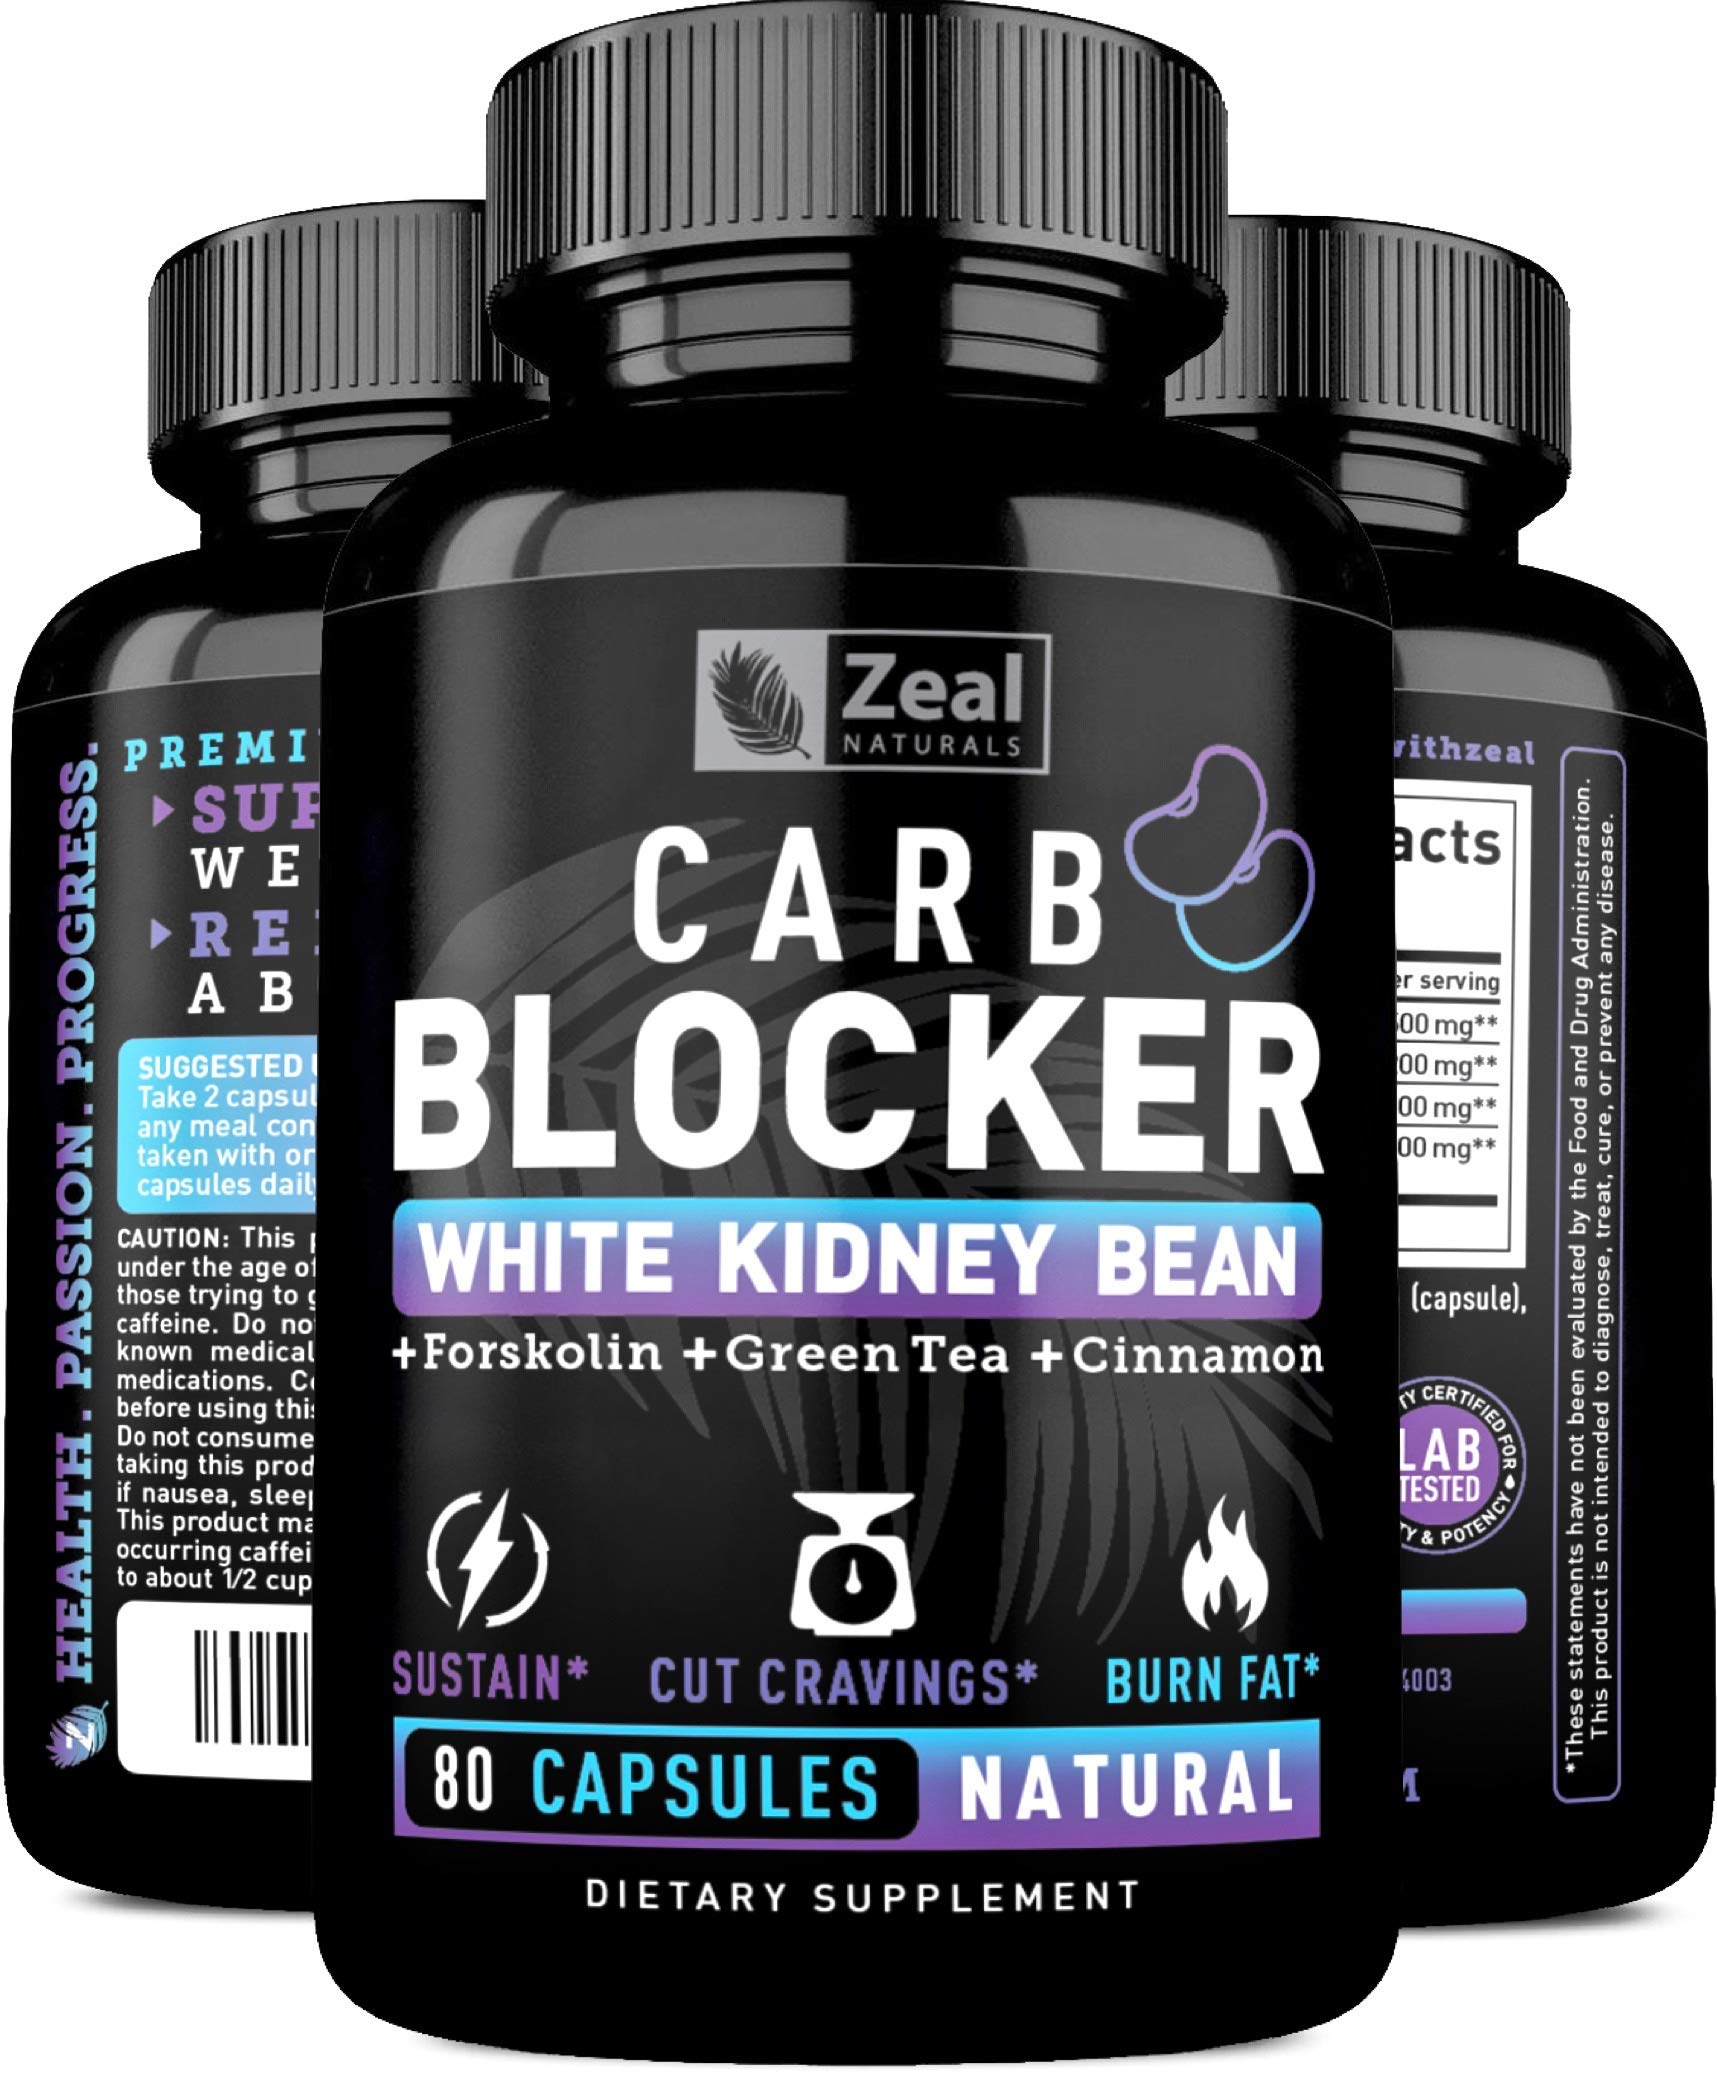 Keto White Kidney Bean Carb Blocker + Forskolin [80 Capsules] White Kidney Bean Extract & Forskolin Extract for Healthy Weight Management & Carb Intercept w Green Tea - Starch Inhibitor for Keto Diet by Zeal Naturals